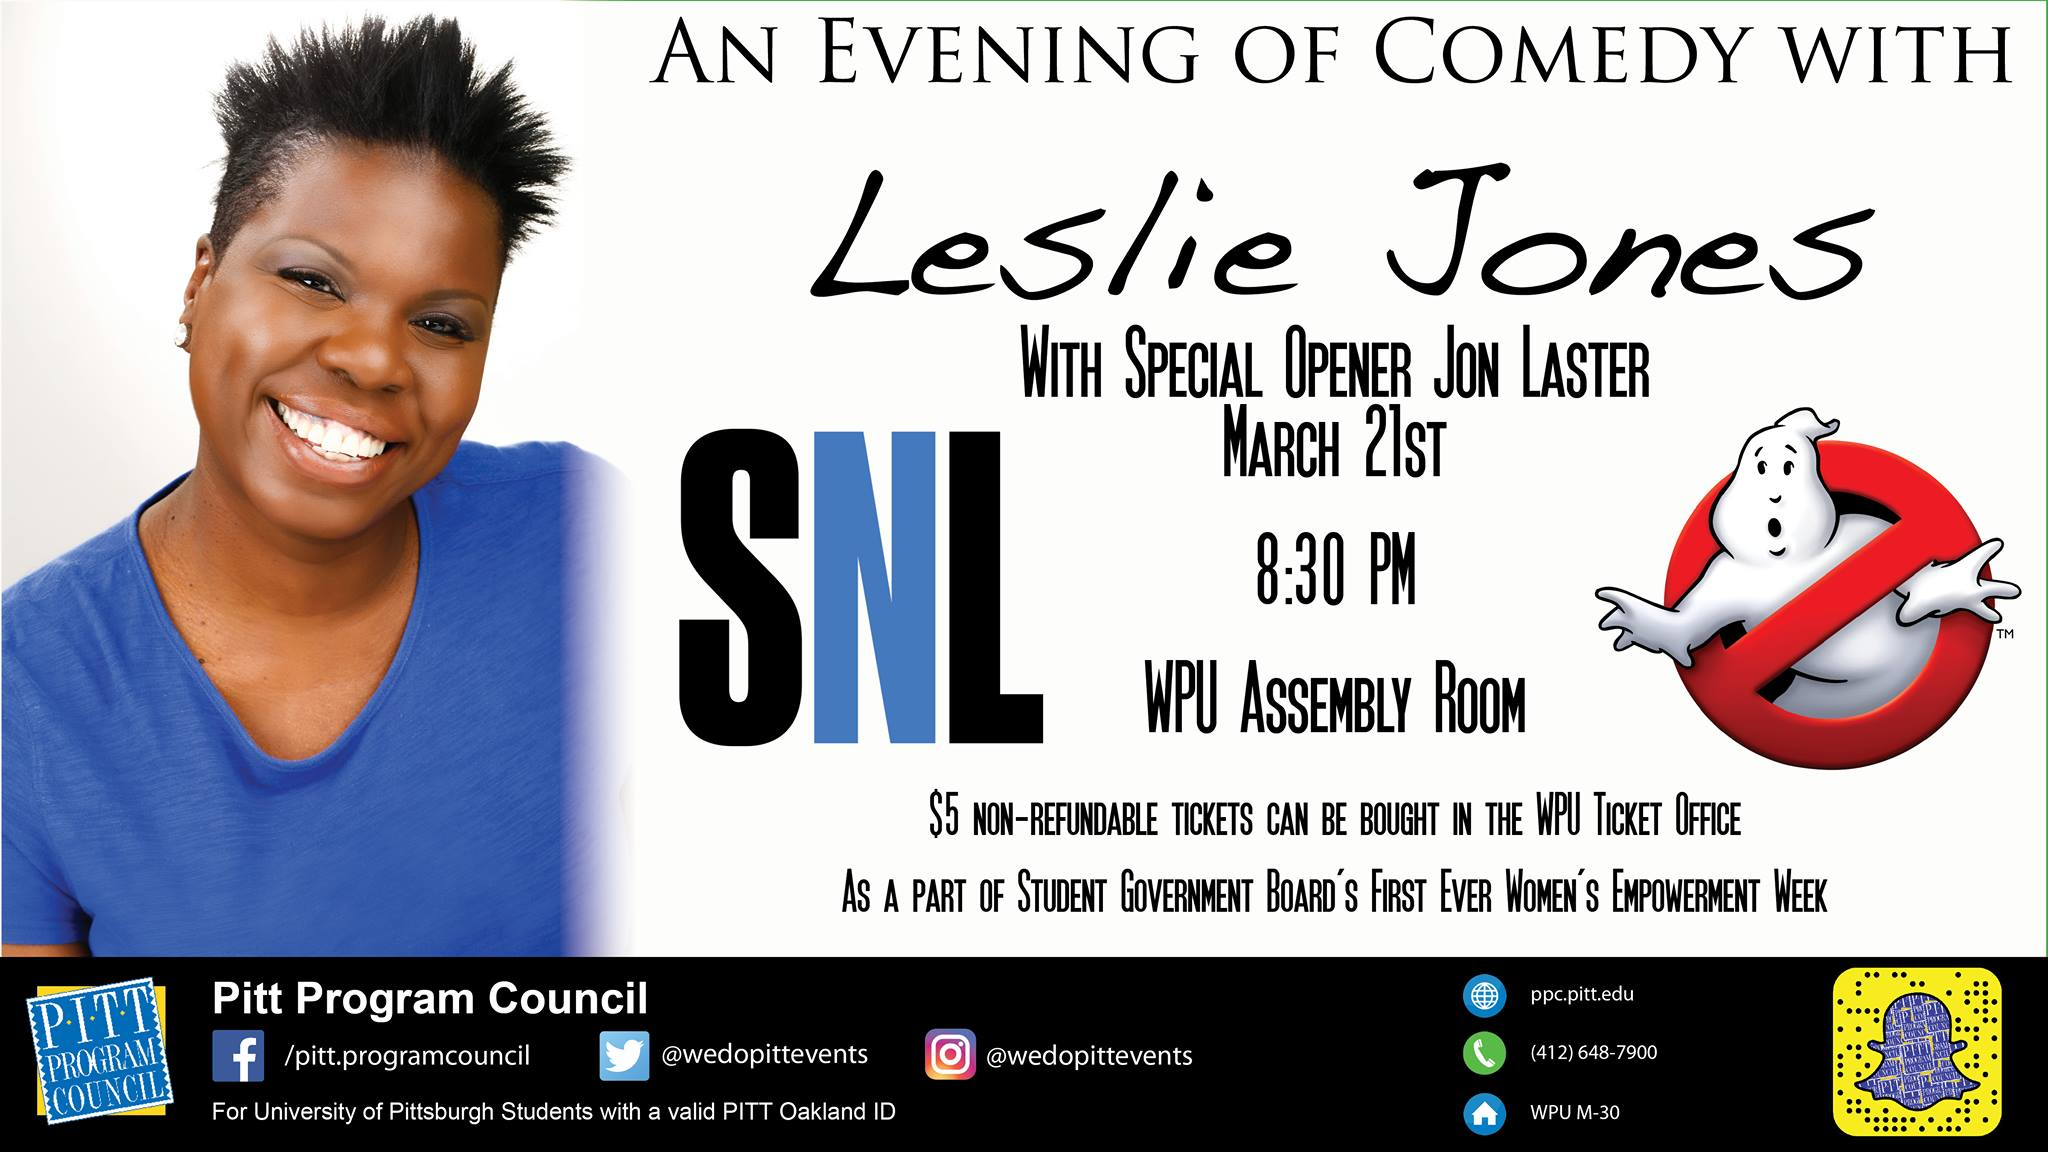 An Evening of Comedy with Leslie Jones